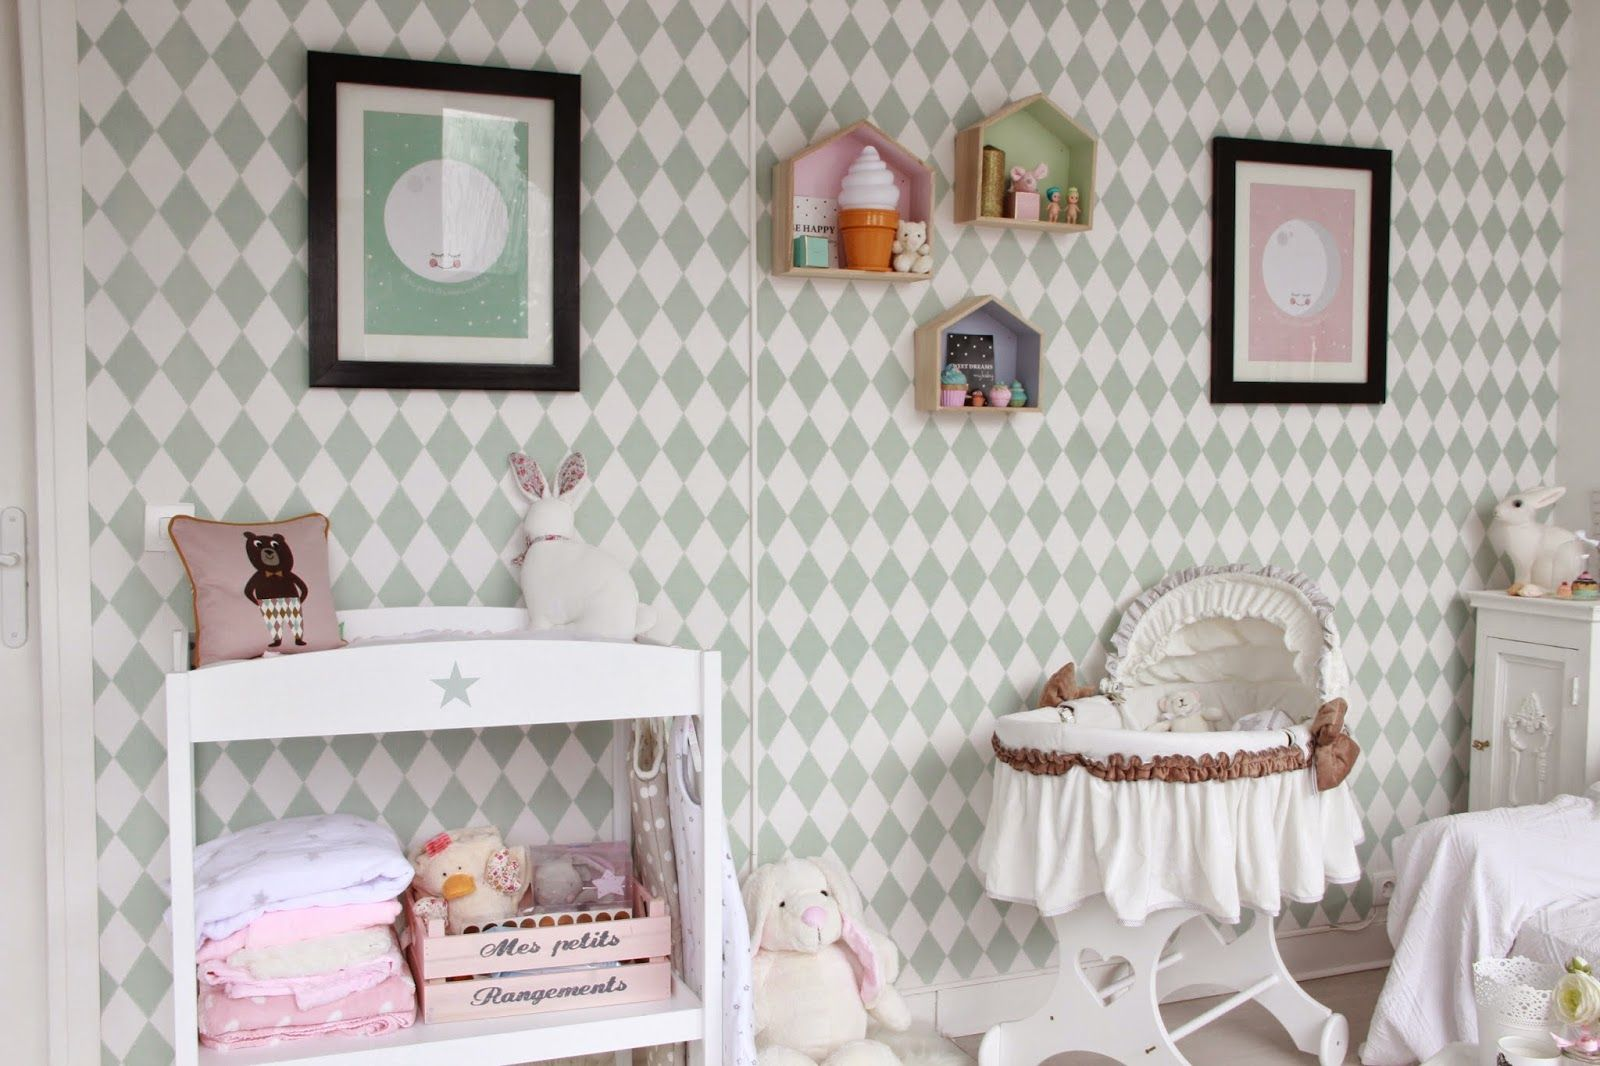 1000 images about chambre bb scandinave on pinterest - Chambre Bebe Design Scandinave